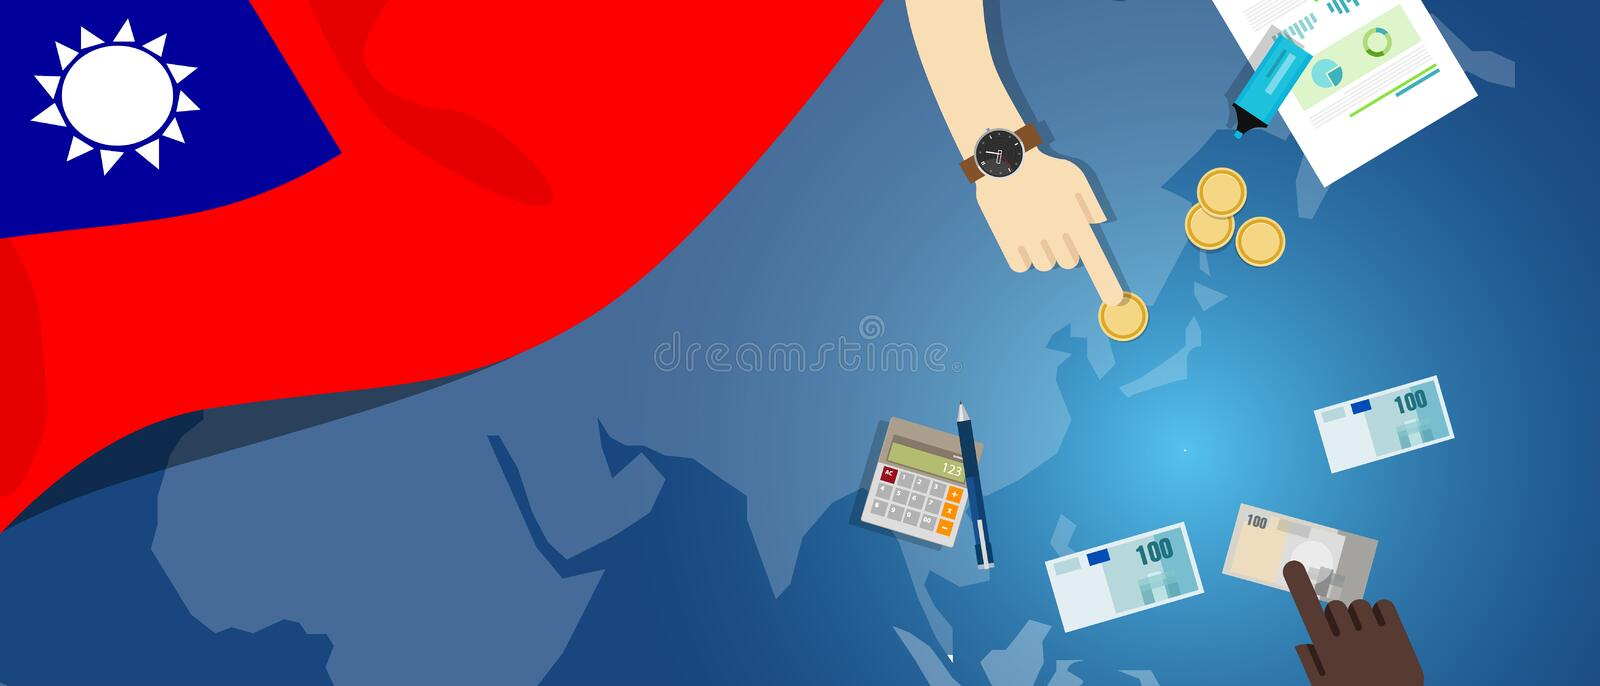 Taiwan Republic of China economy fiscal money trade concept illustration of financial banking budget with flag map. And currency vector stock illustration